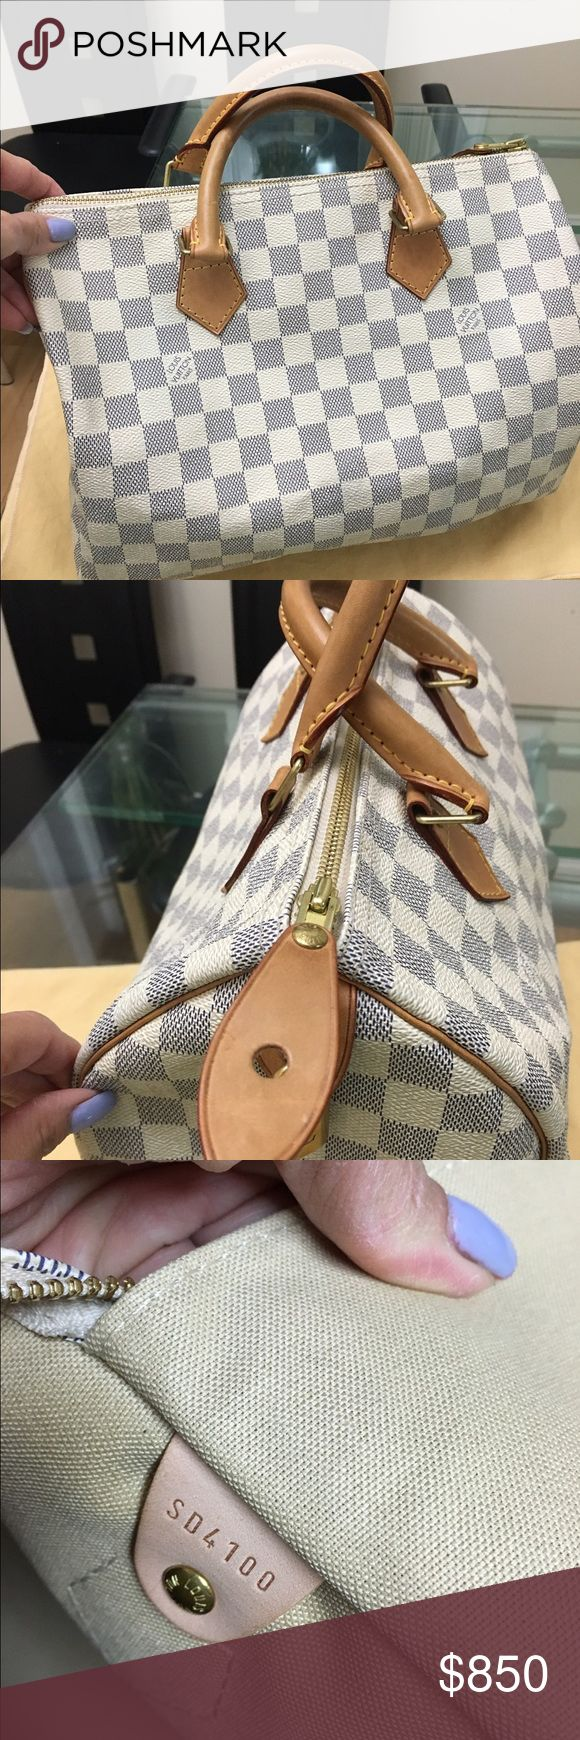 Authentic pre owned Louis Vuitton Speedy 30 Azur Authentic pre owned Louis Vuitton Speedy 30 Damier Azur , good condition , no tear or scuff , signs of wear lightl stain but not noticeable interior , handle still in honey color , great spacious bag , still lots of life to this bag . No Trade!! Serious Buyer Welcome !! Louis Vuitton Bags Satchels